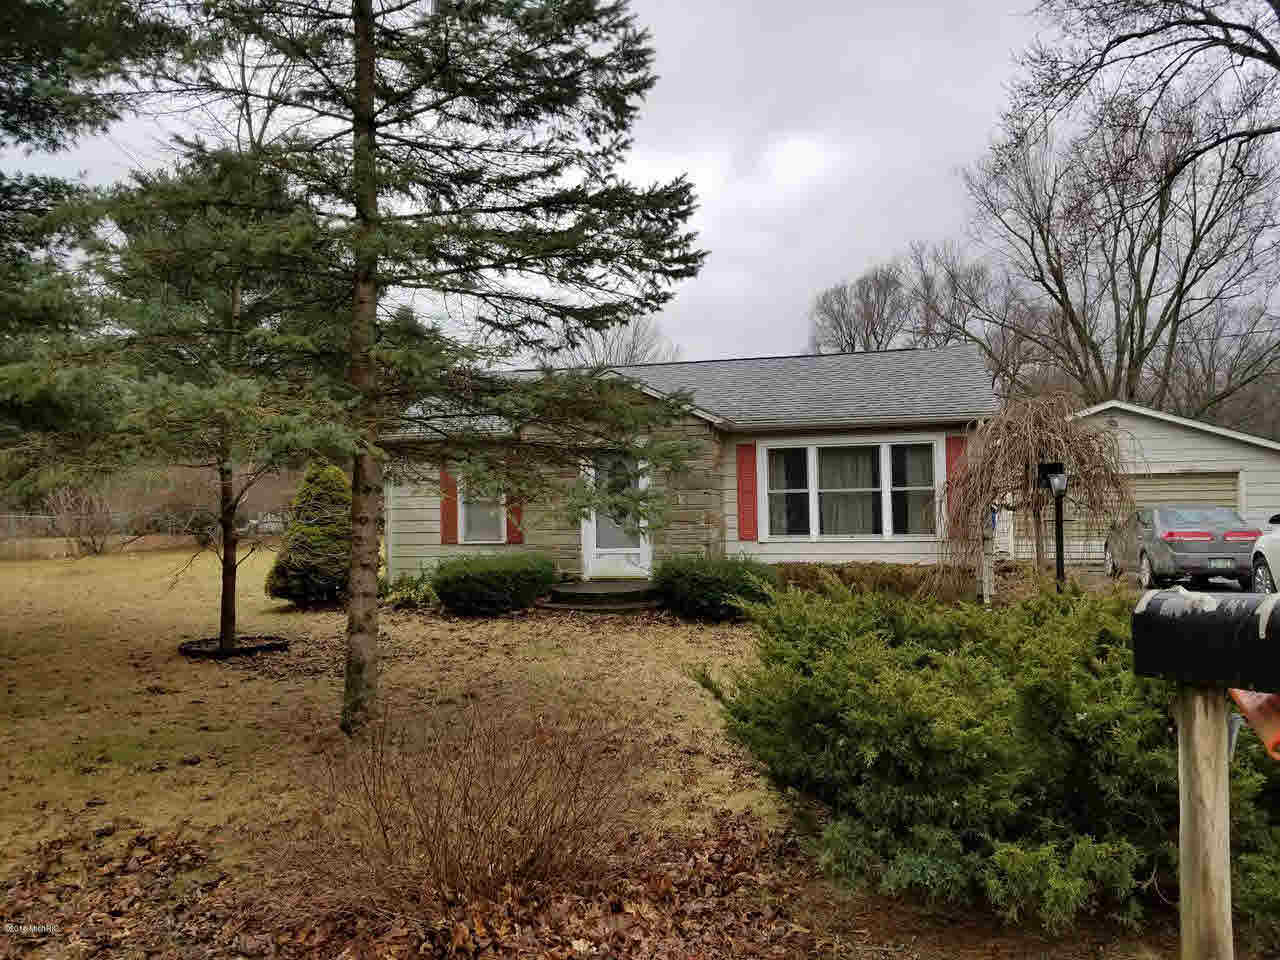 2 bed / 1 bath Home in Hillsdale for $69,900